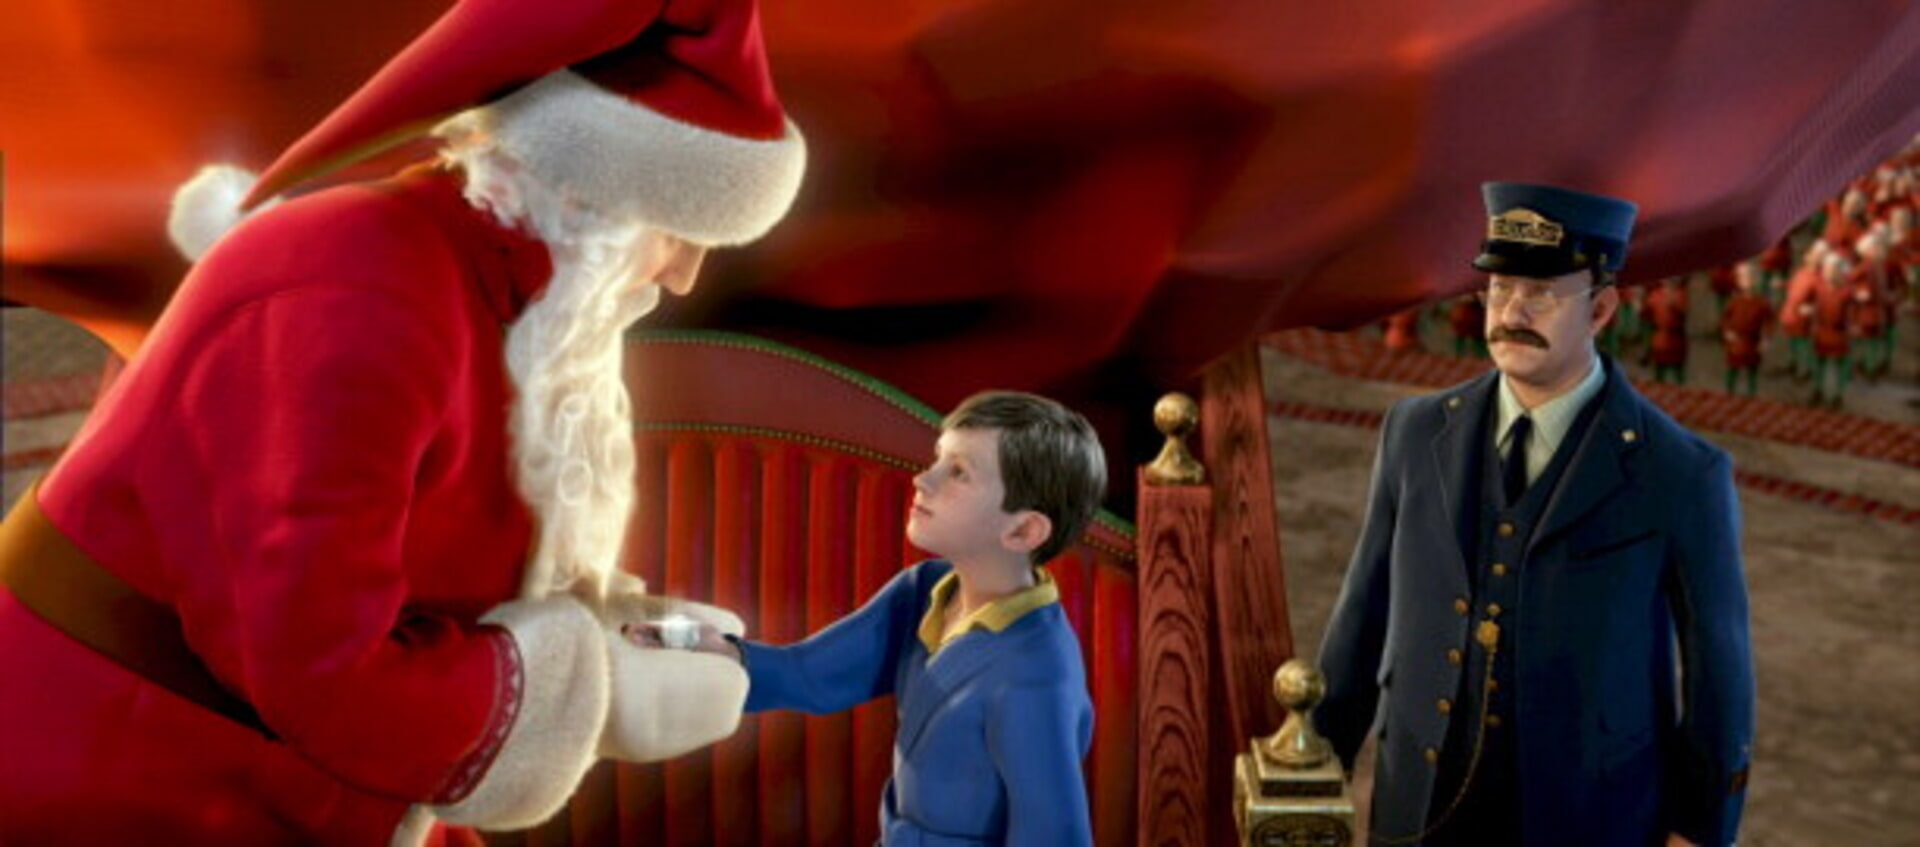 The Polar Express - Image 14